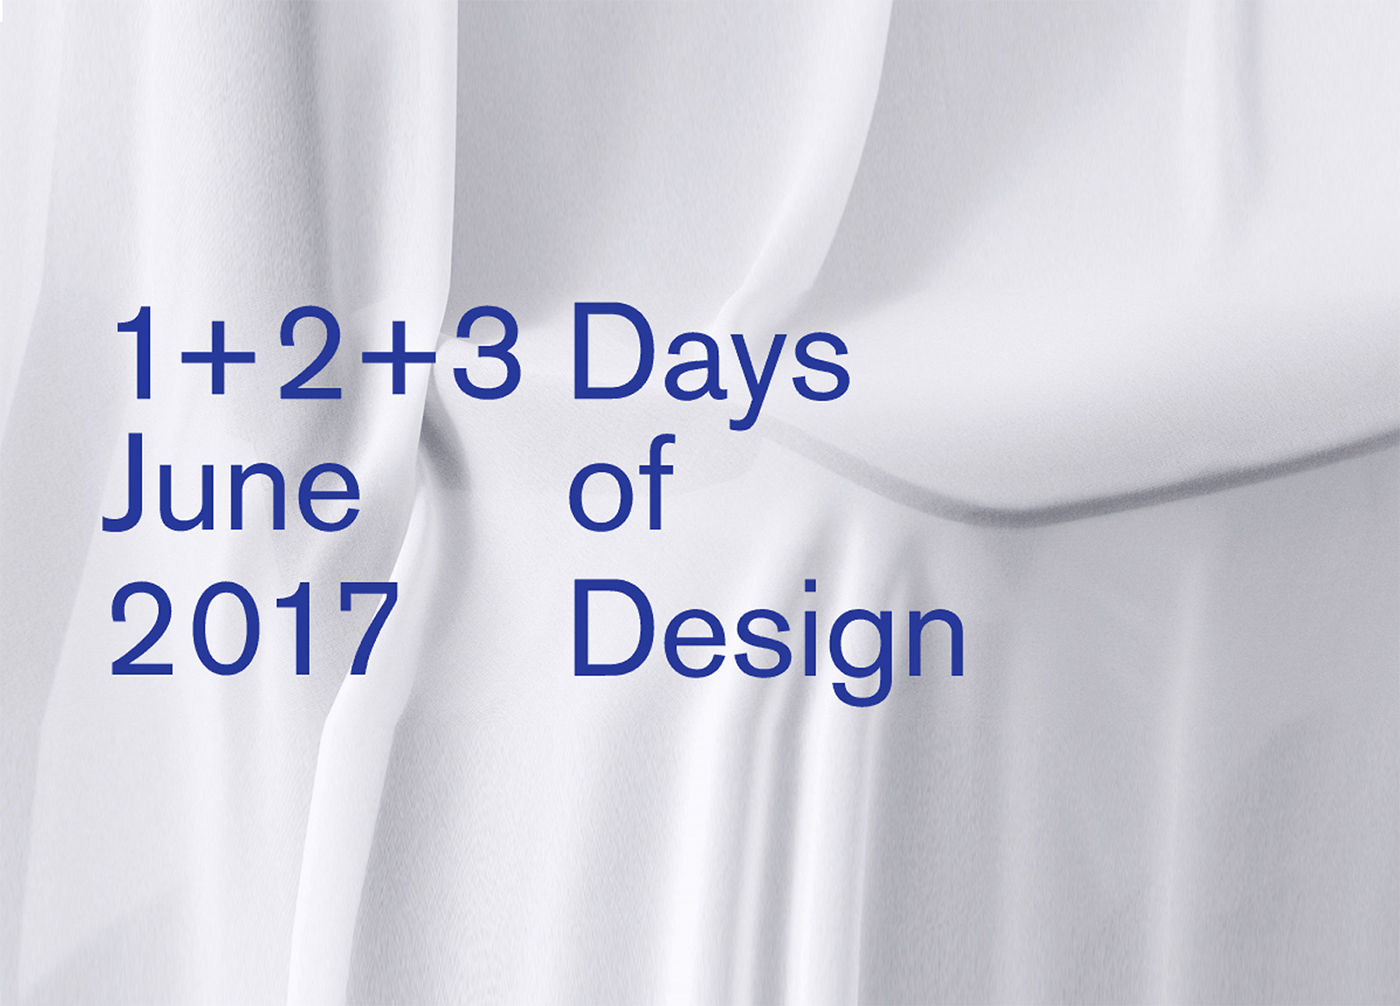 Studio MUI - 3 Days of Design